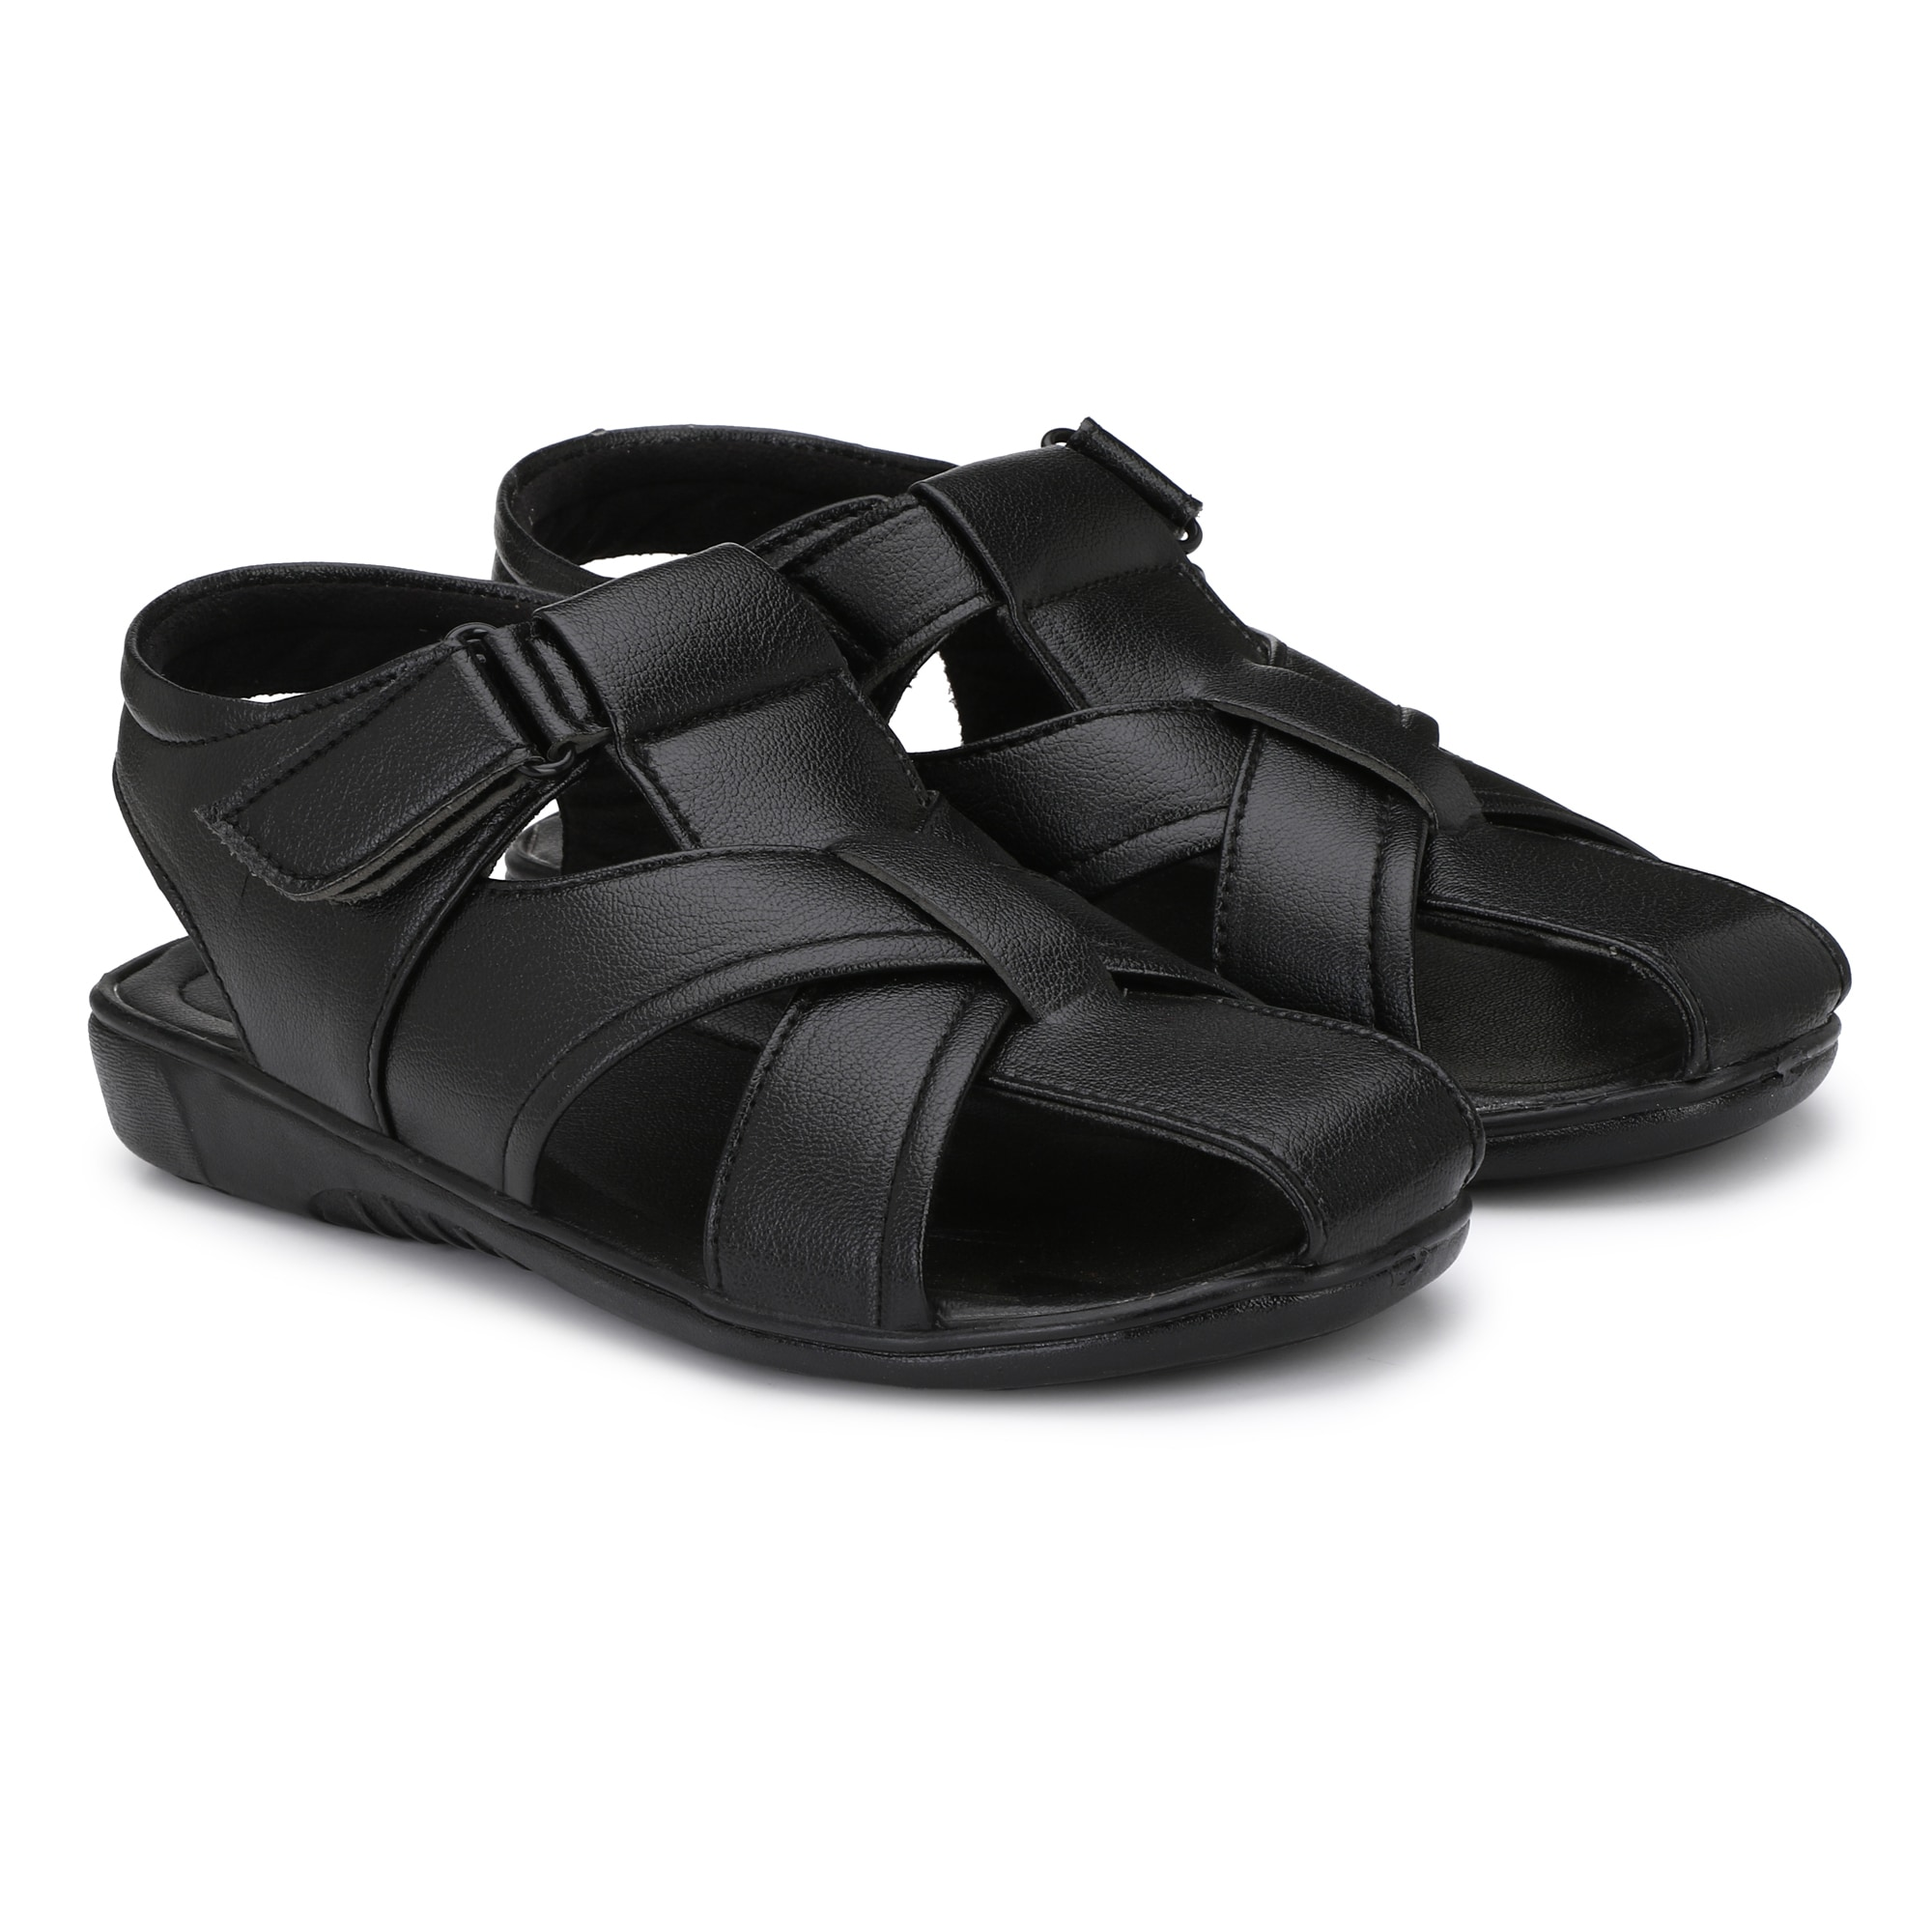 BUCIK Men's BLACK Synthetic Leather Casual Sandal BCK1020-BLACK (Black,6-10,8 PAIR)